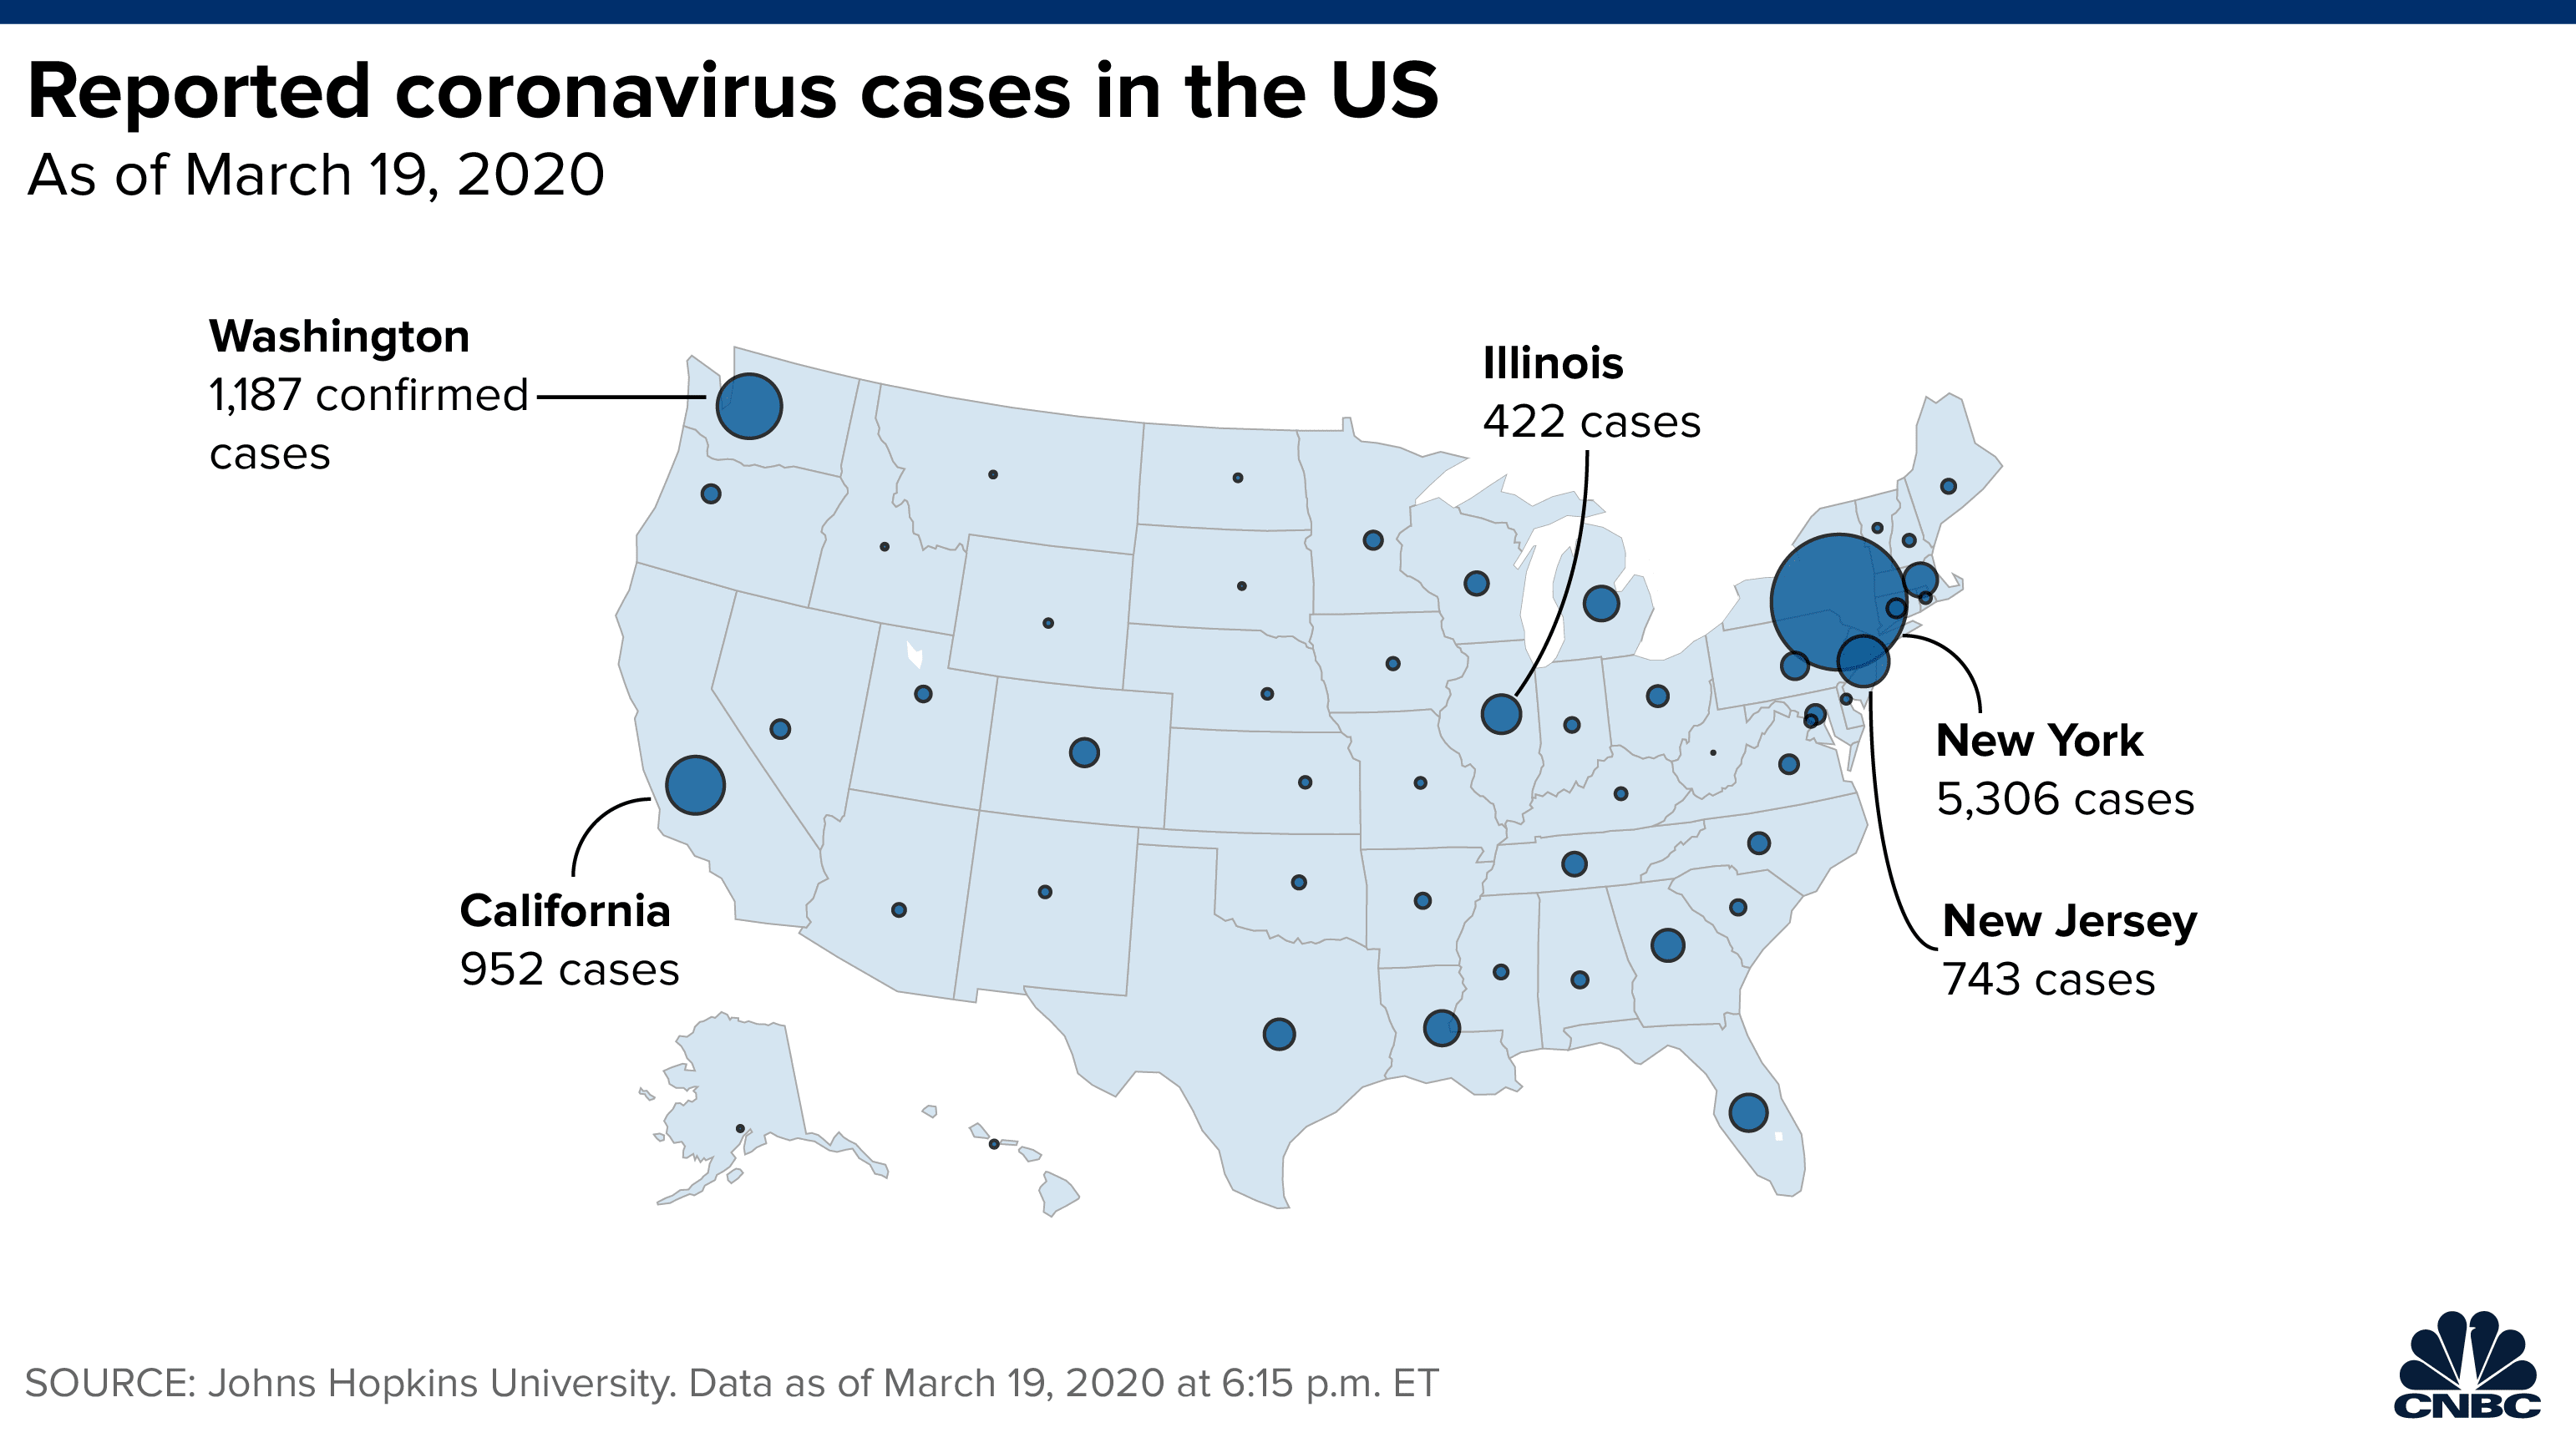 France confirms an increase in cases with more than 500 new coronavirus infections in one day